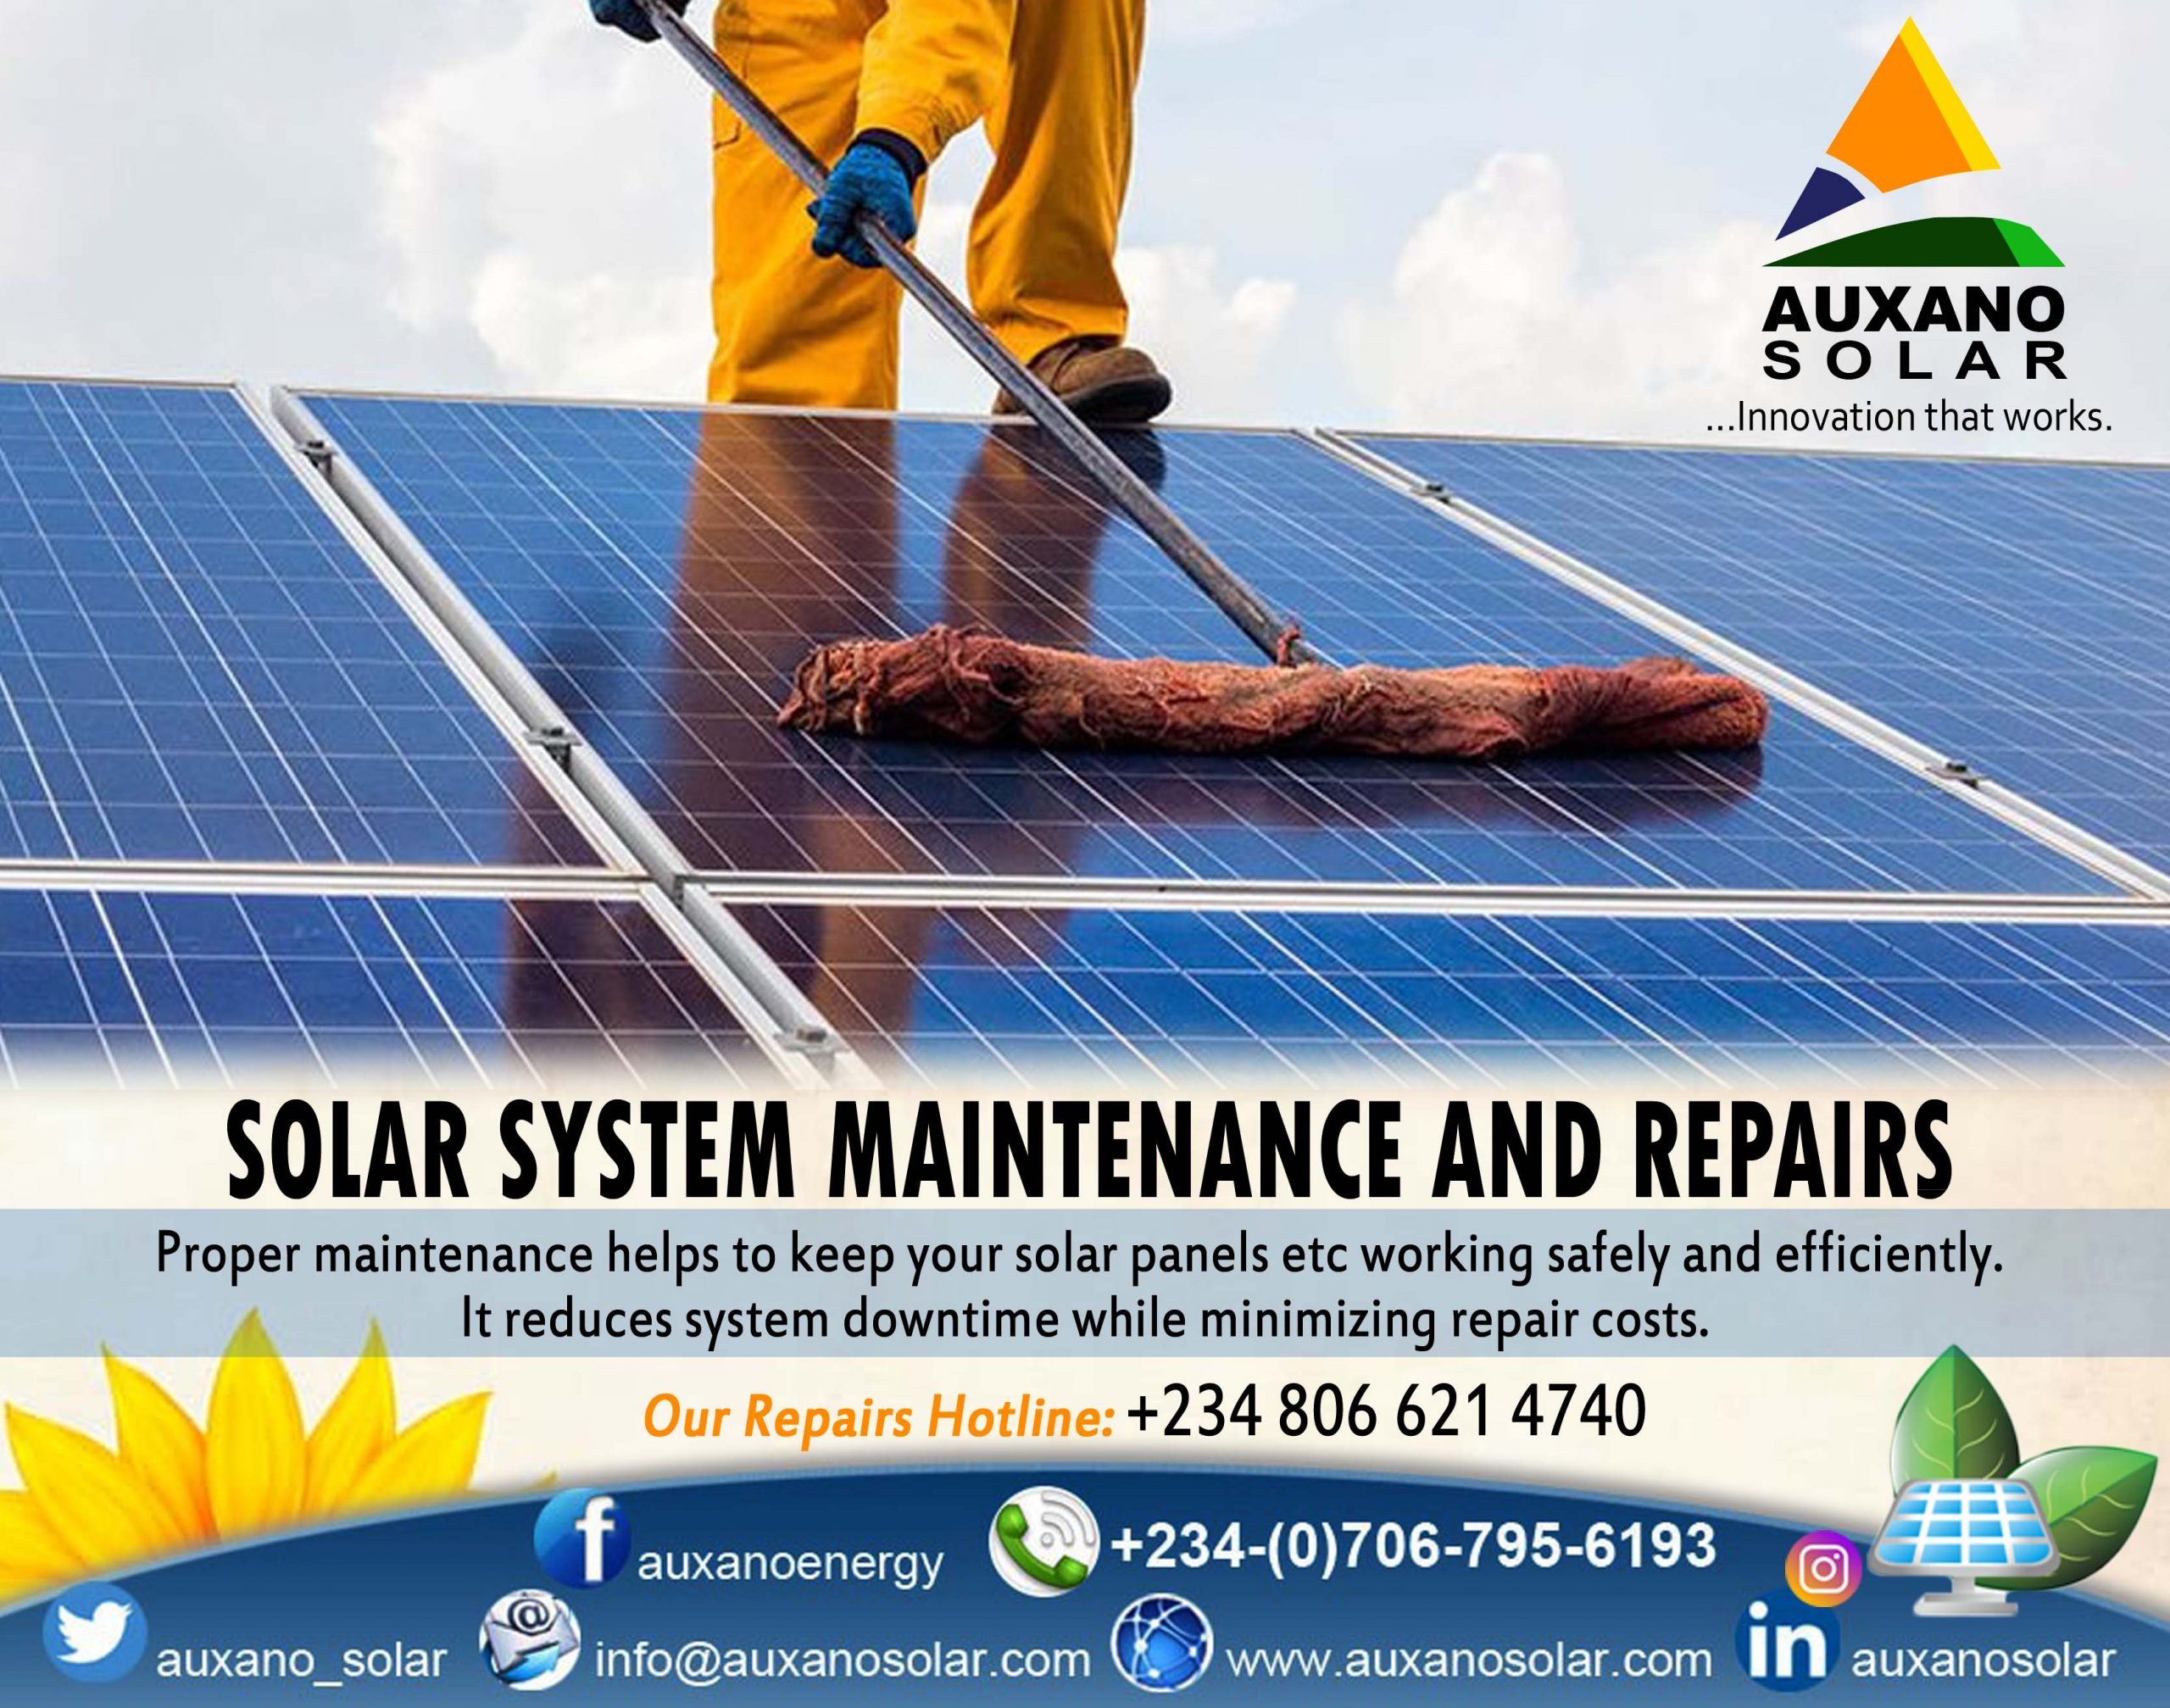 Proper maintenance helps to keep your solar panels working safely and efficiently. It reduces system downtime while minimising repair costs.